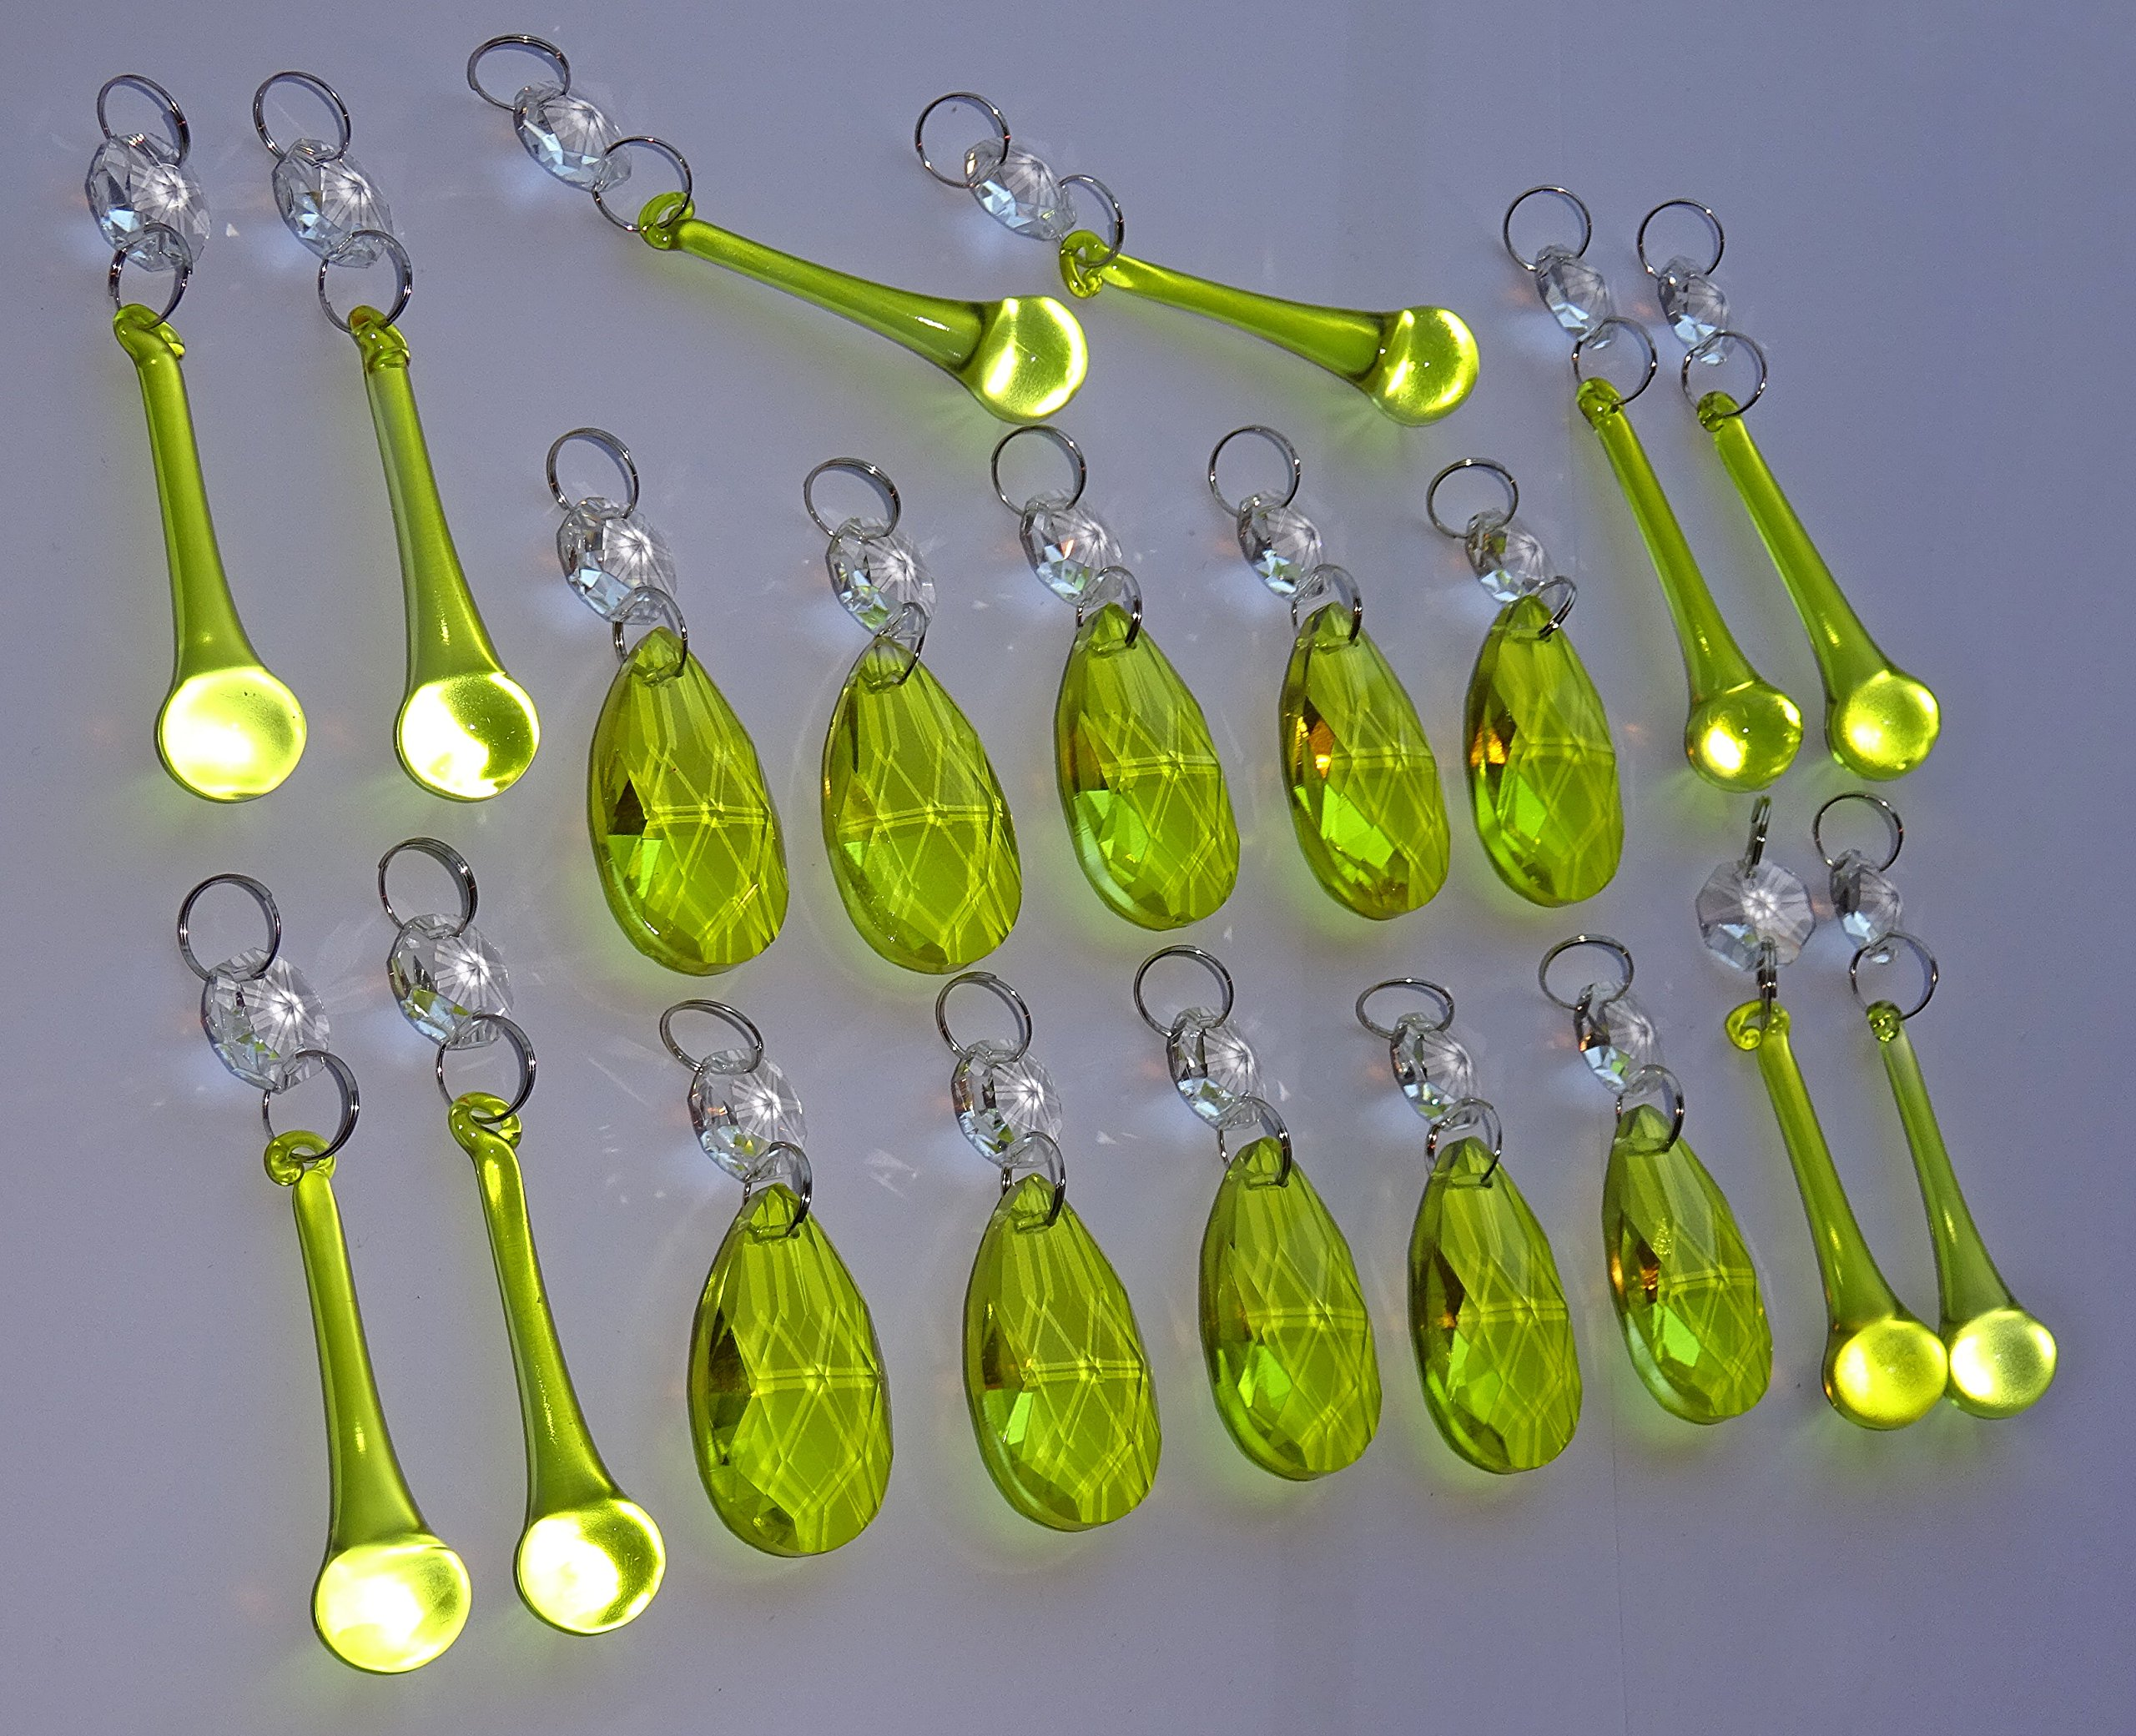 10 ANTIQUE SAGE GREEN CHANDELIER GLASS CRYSTALS DROPS ORB DROPLETS BEADS PRISMS